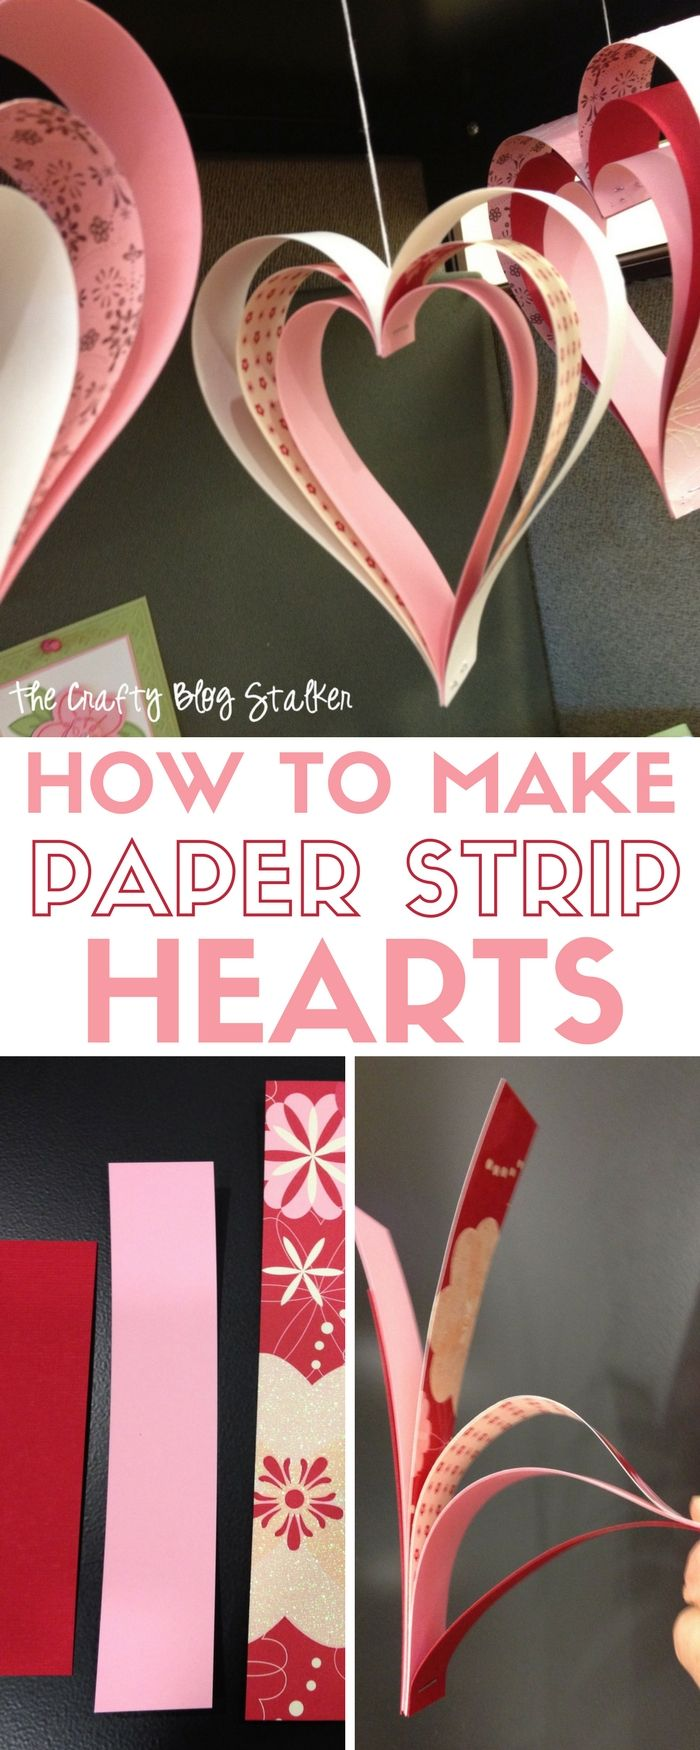 Paper Strip Hearts | Valentine's Day | Party Decor | Paper Crafts | Banner | Hanging Hearts |Easy DIY Craft Tutorial Idea